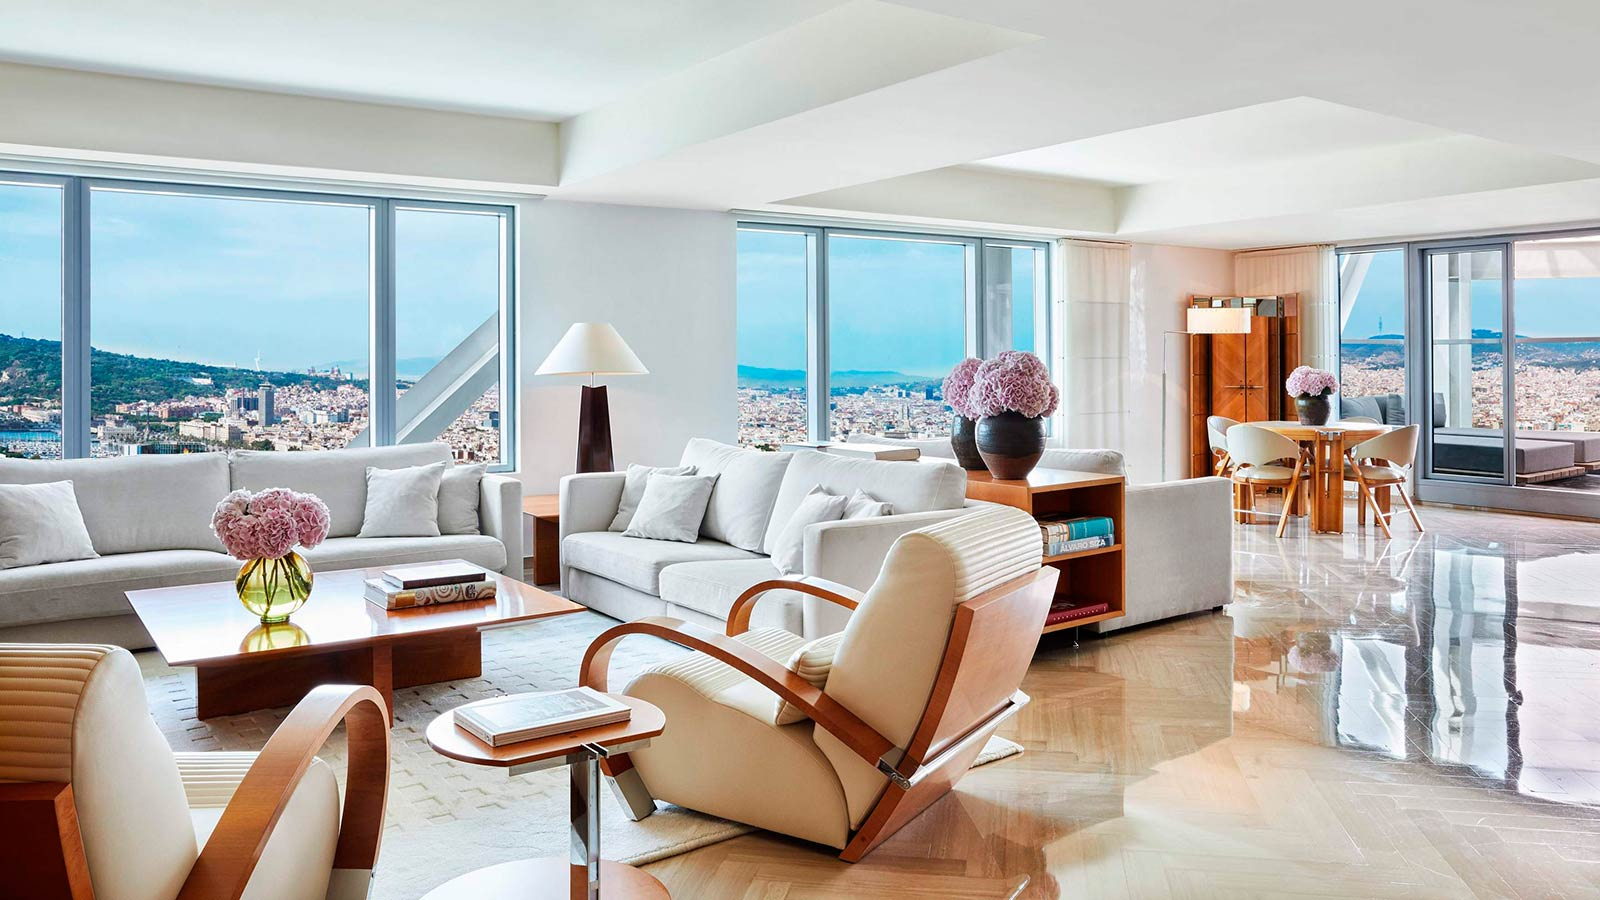 3 bedrooms Penthouse – Living room